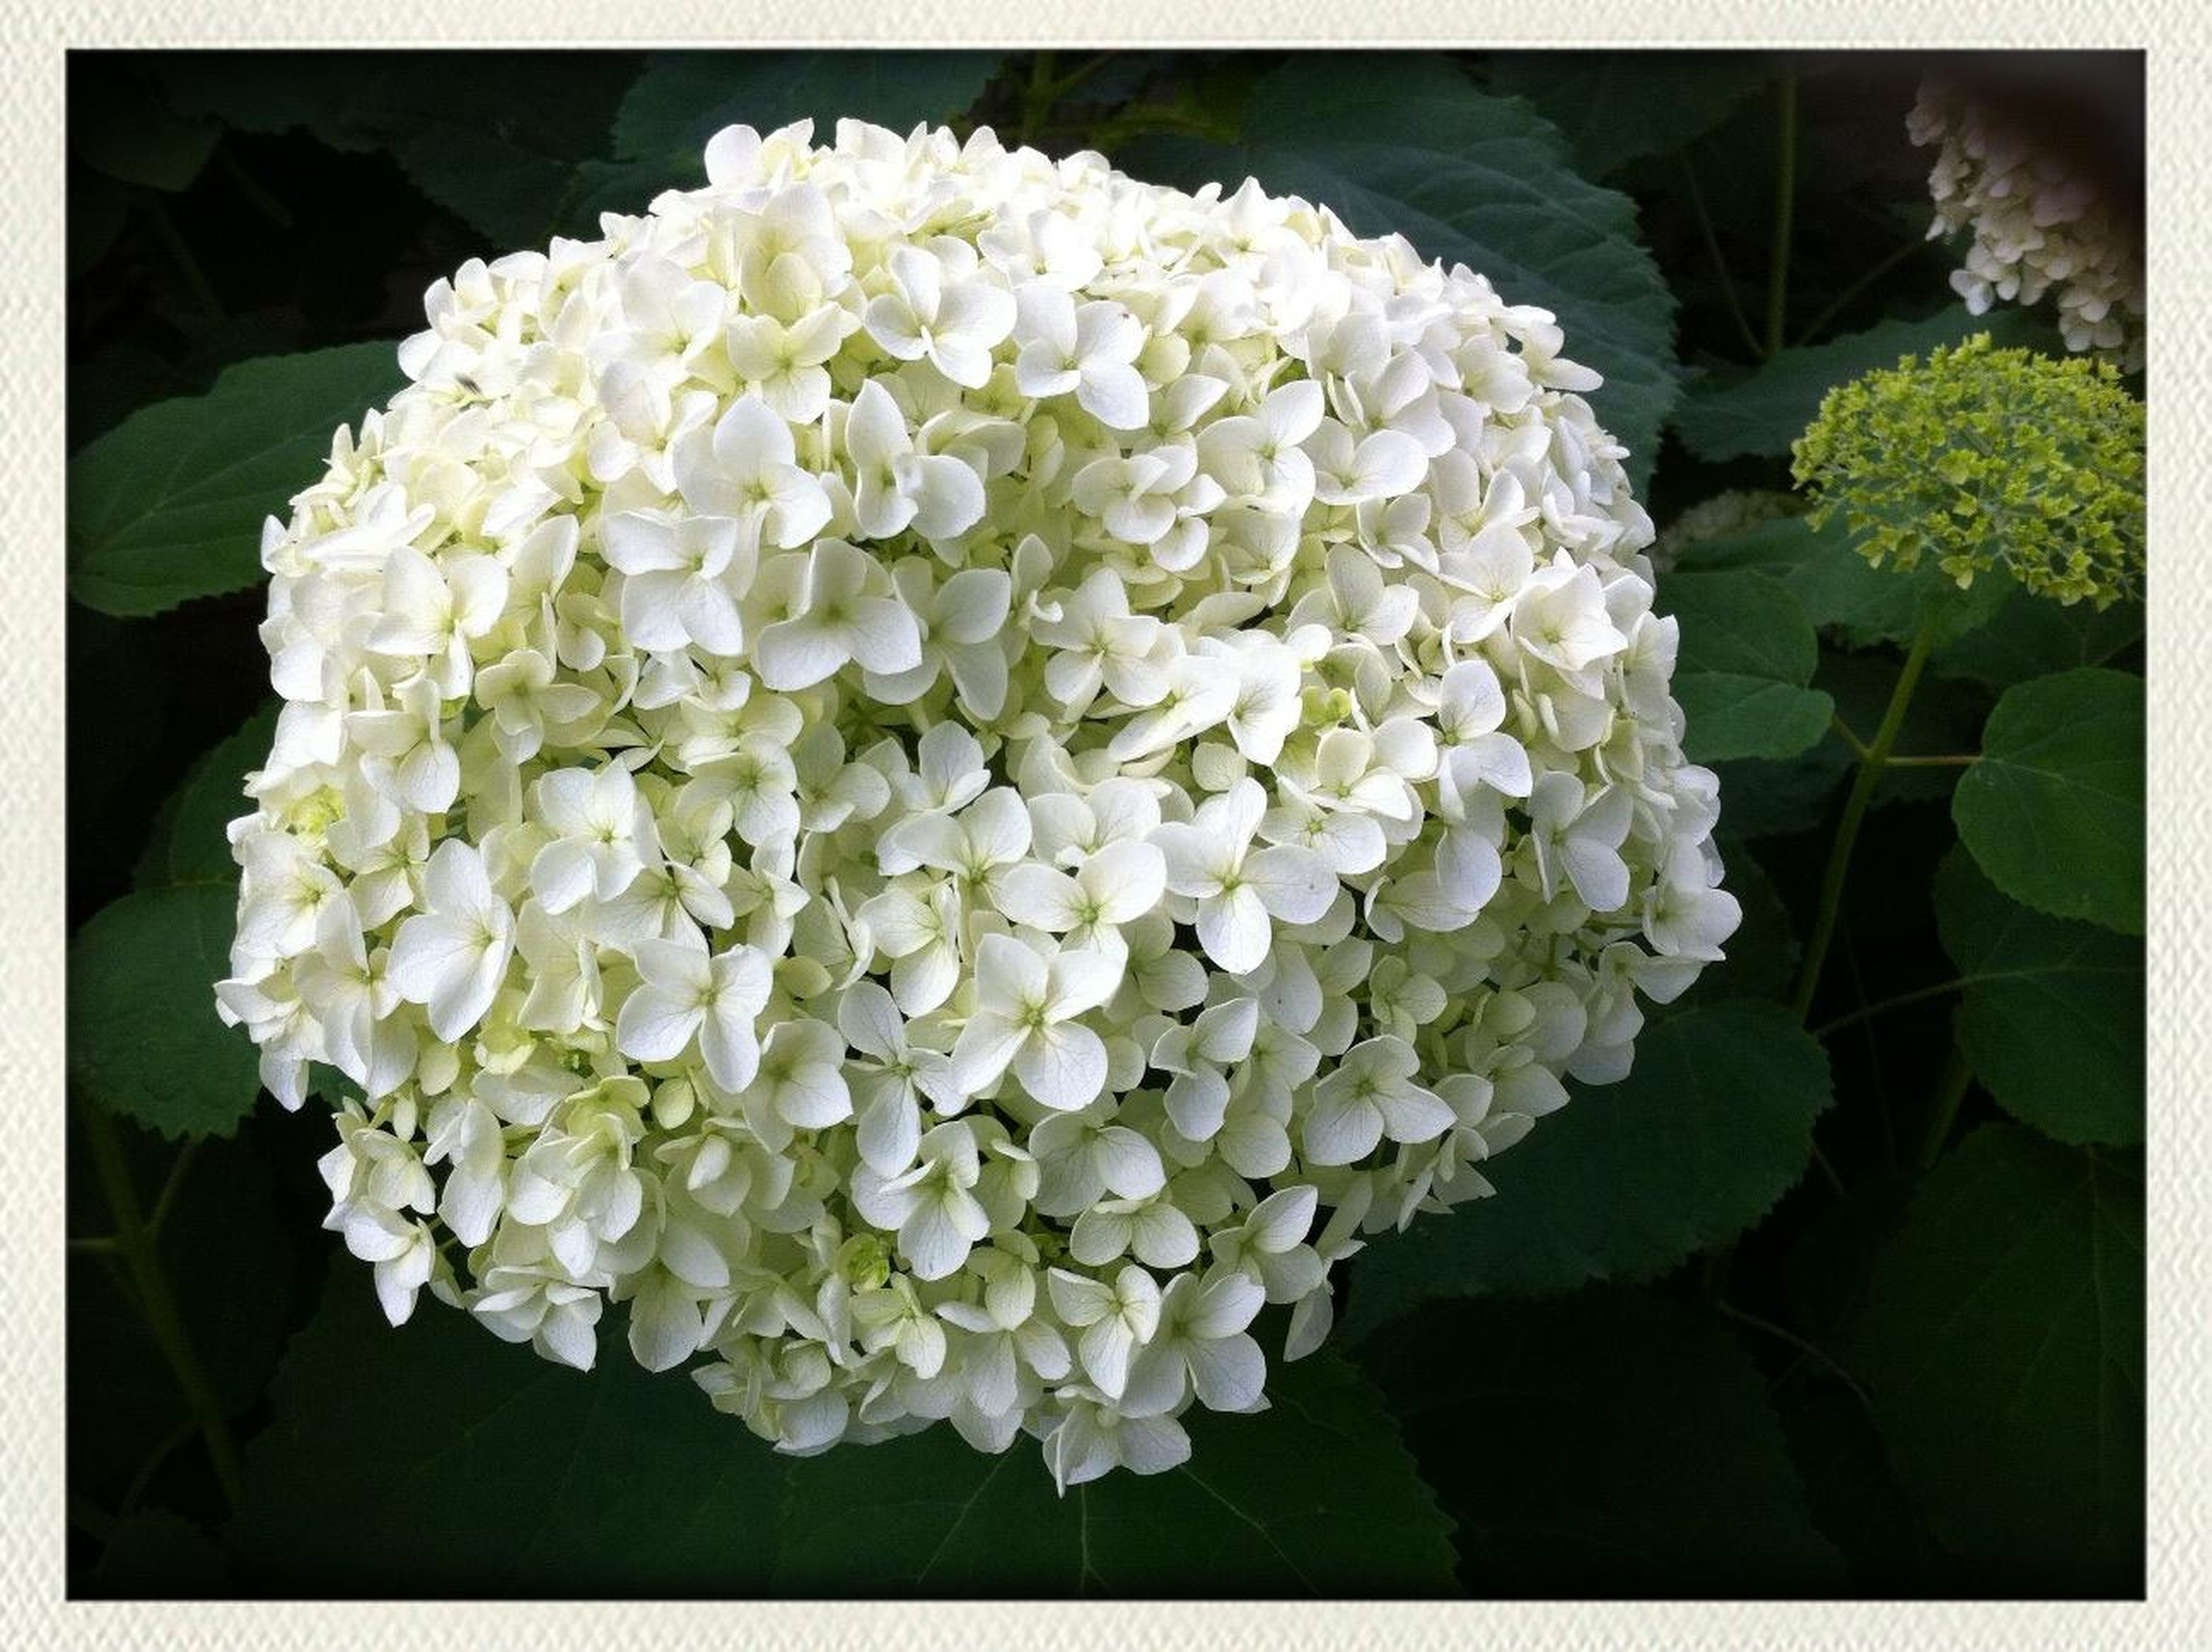 flower, transfer print, freshness, petal, fragility, flower head, beauty in nature, growth, auto post production filter, close-up, nature, blooming, plant, bunch of flowers, blossom, in bloom, white color, high angle view, no people, botany